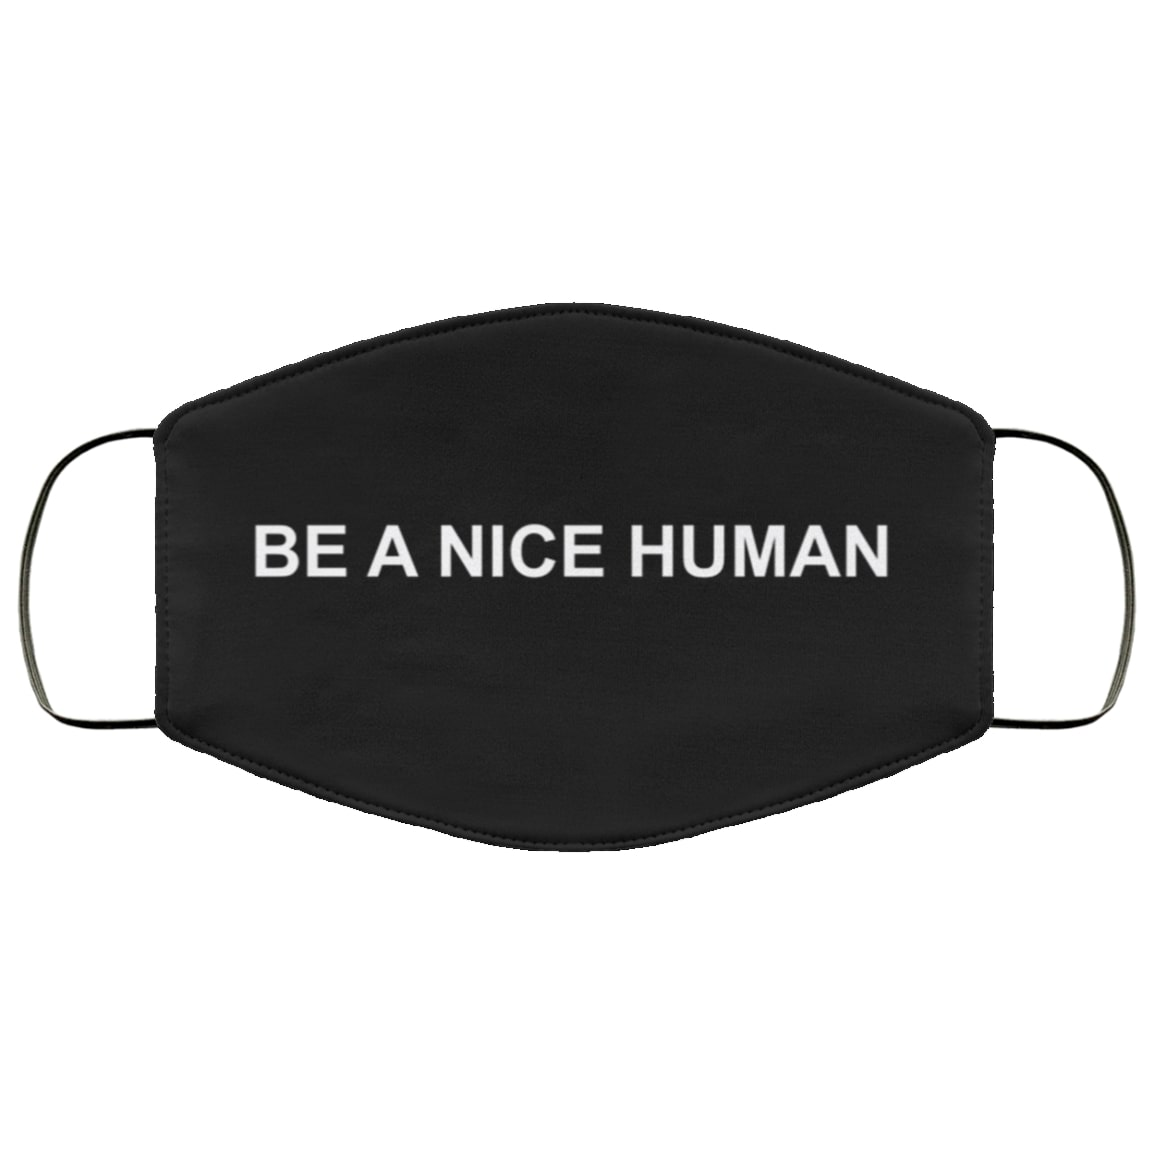 Be a nice human full over printed face mask 3